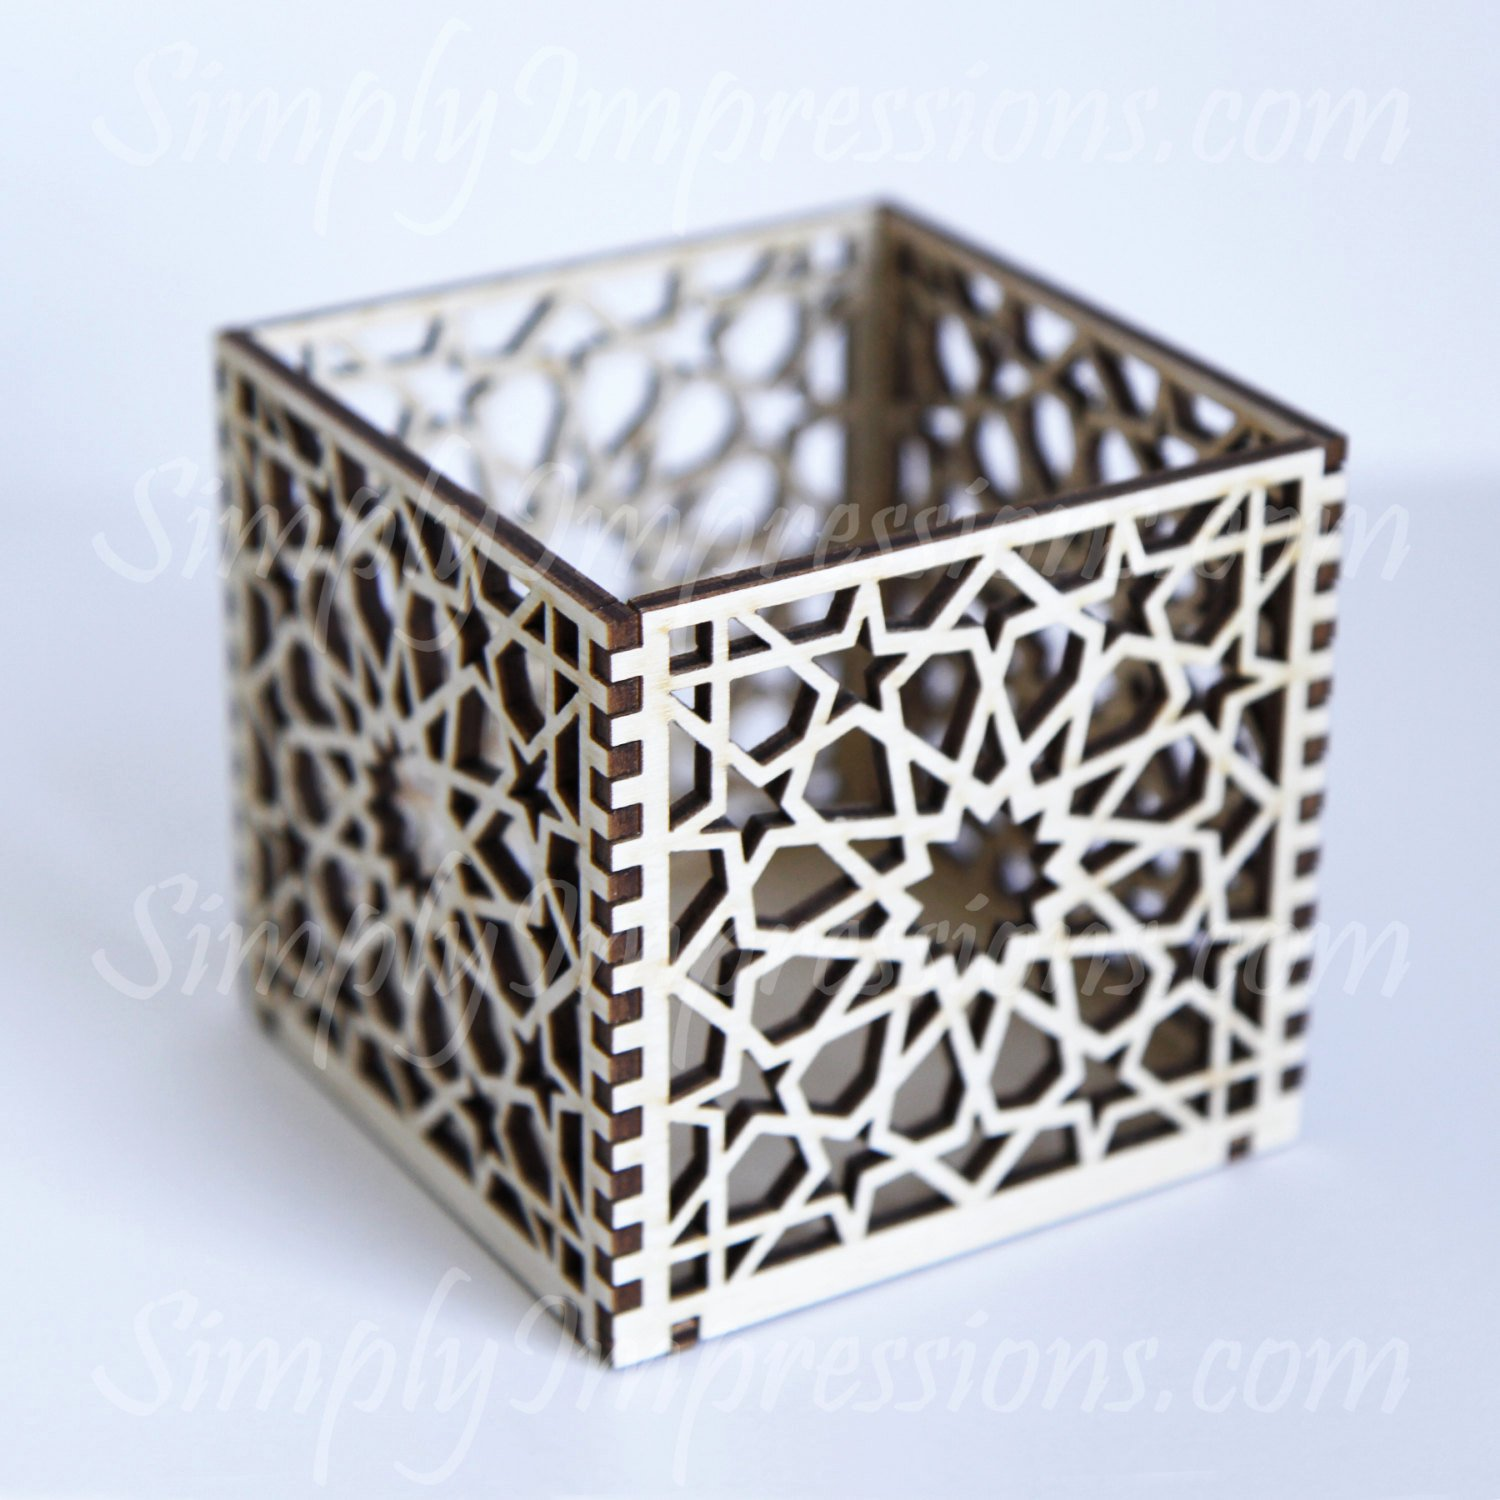 Box Cut Out Patterns Awesome Geometric Wood Box Laser Cut Out